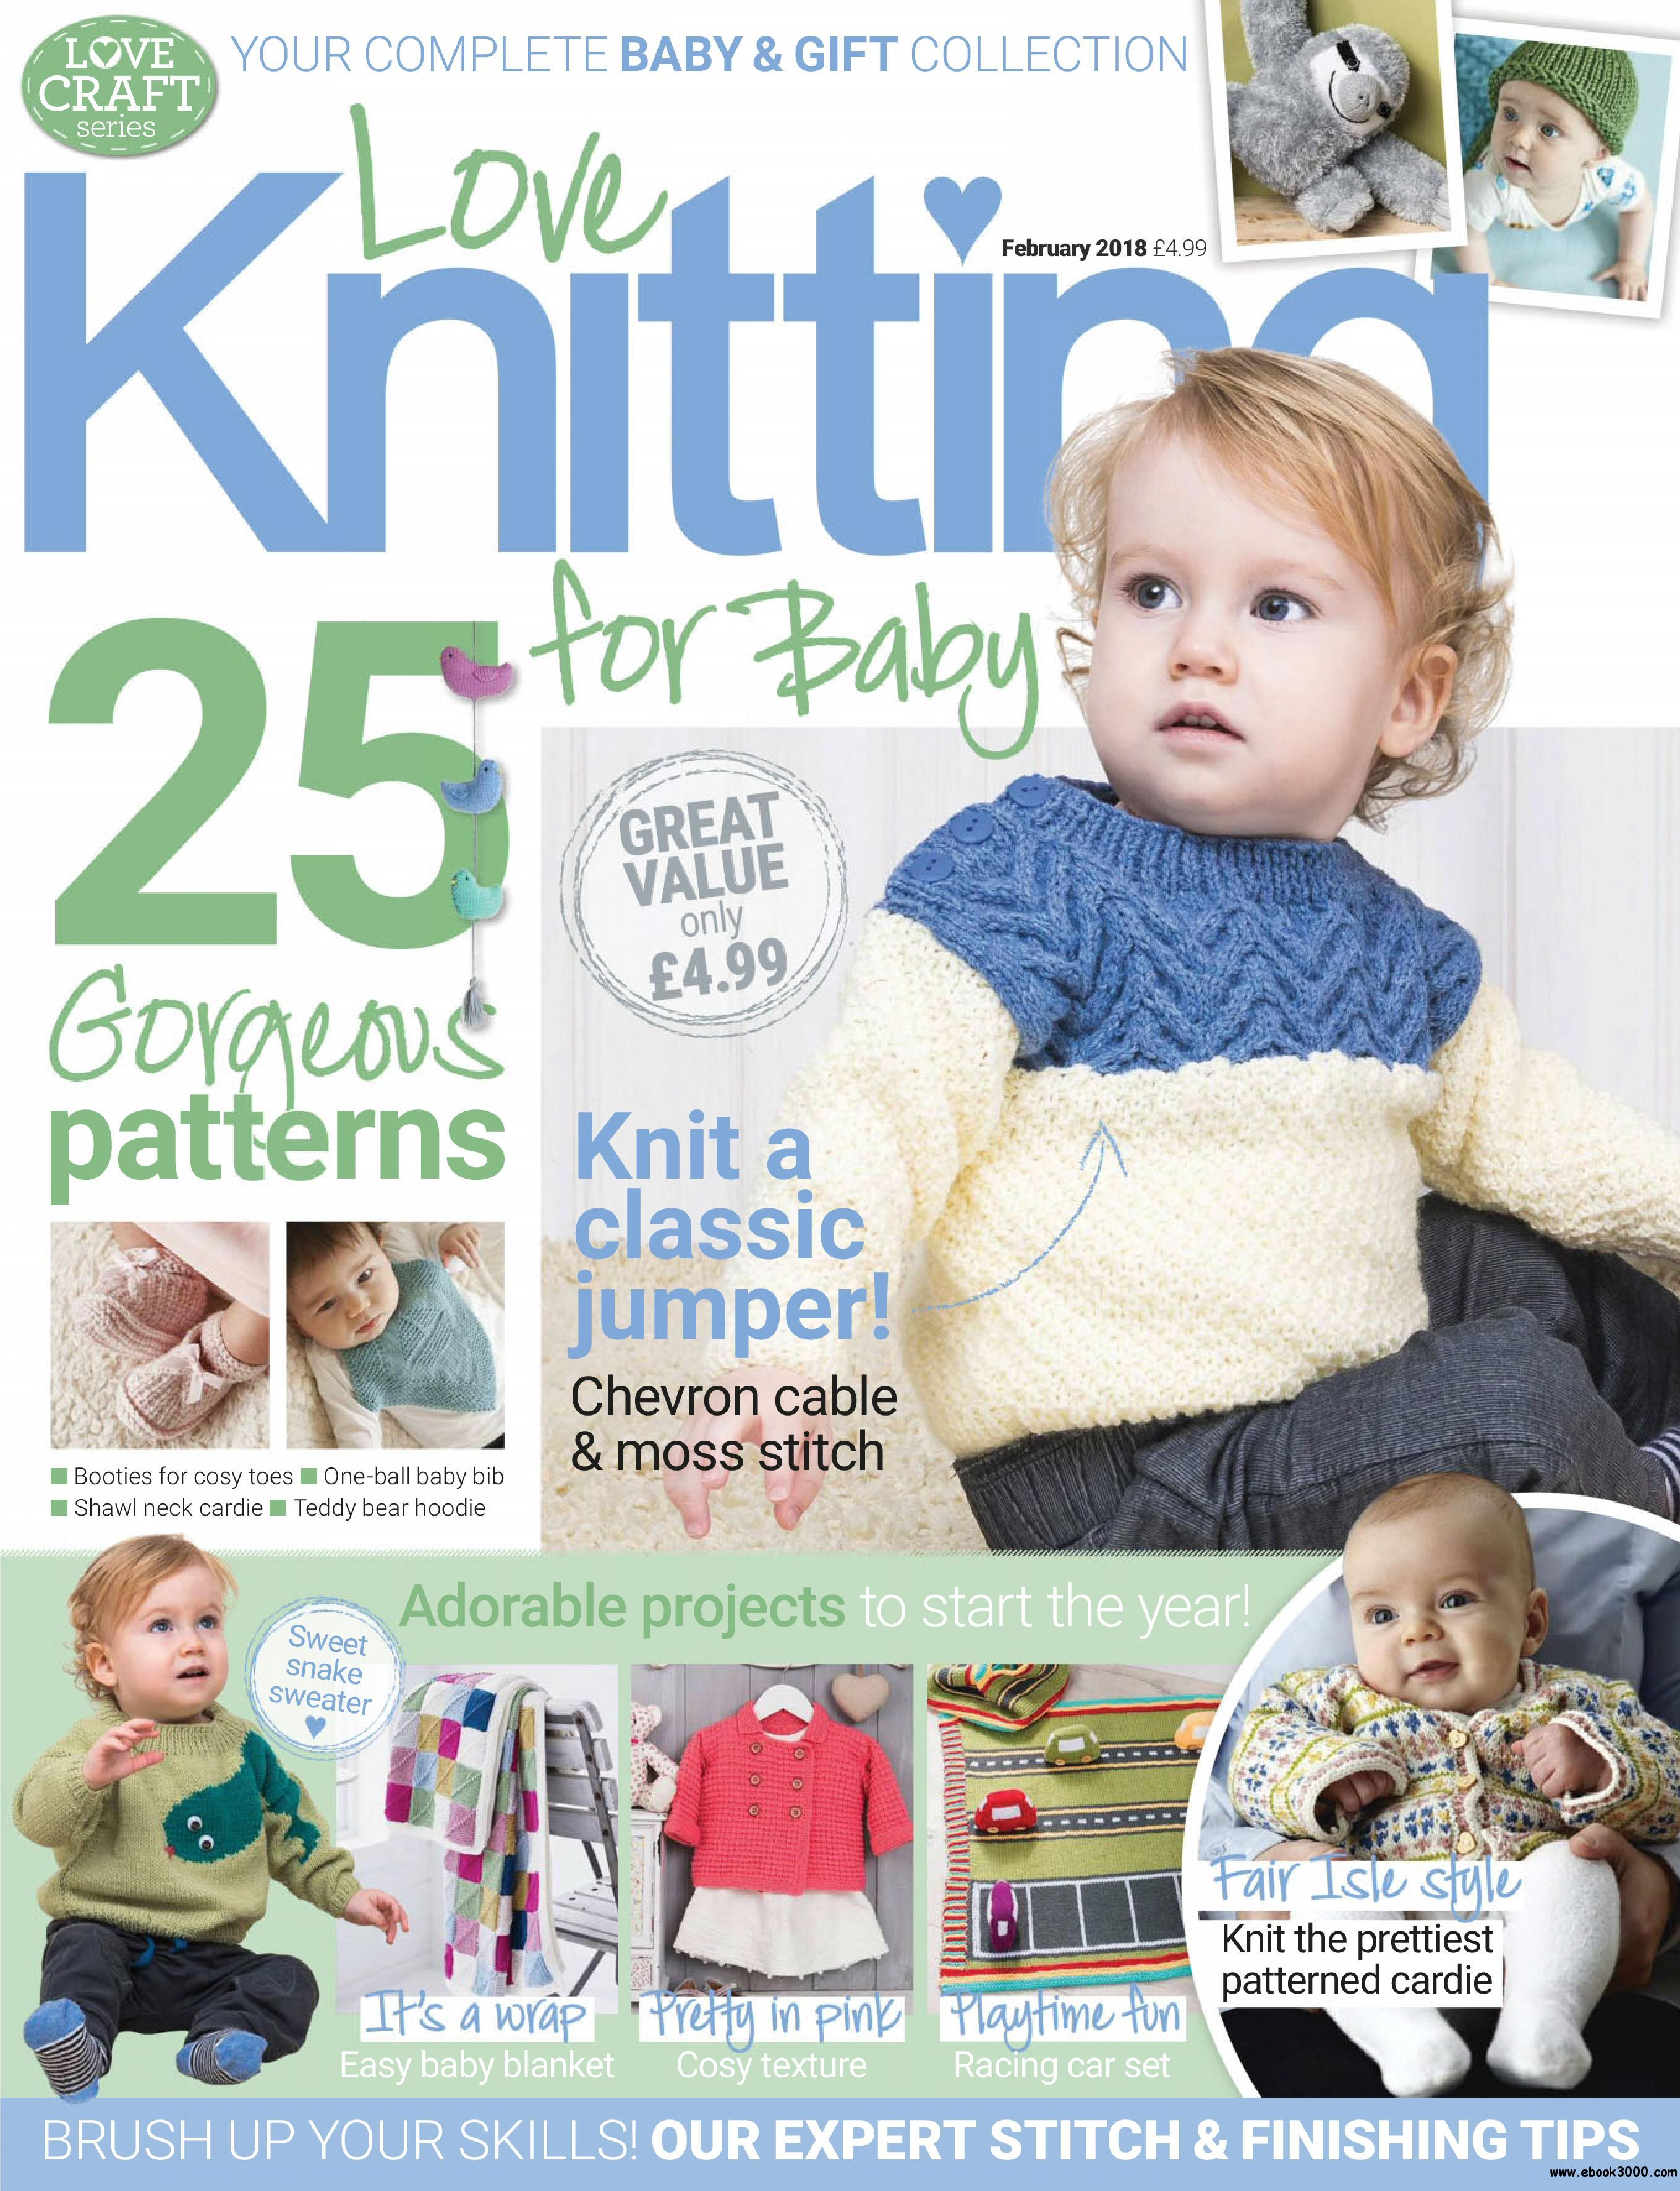 Love Knitting for Babies - January 11, 2018 - Free eBooks Download